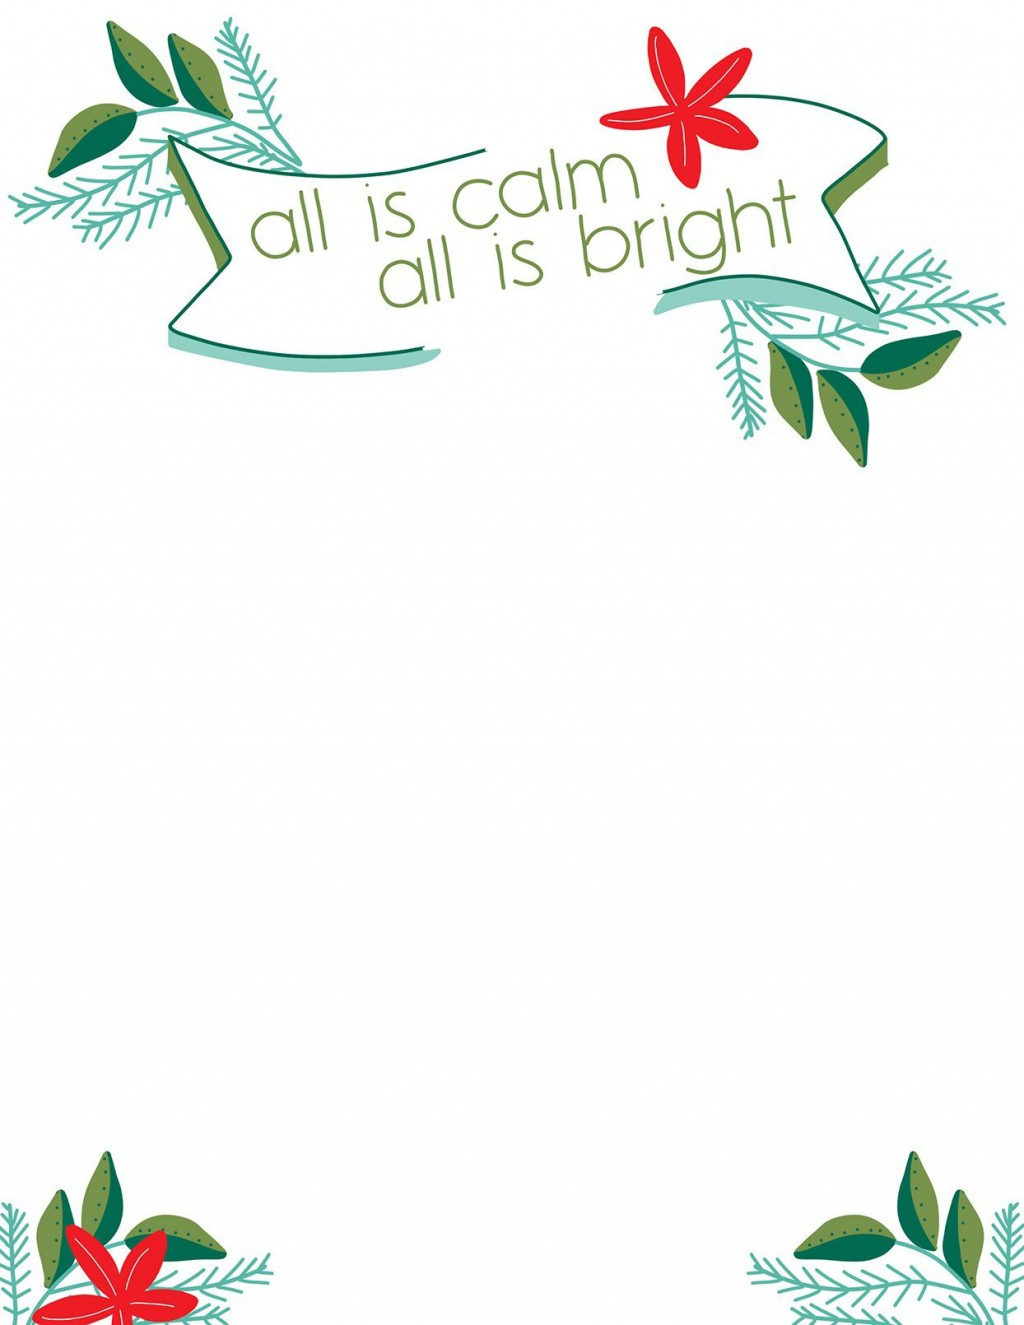 011 Amazing Free Christma Letter Template For Microsoft Word Highest Clarity  Downloadable NewsletterLarge